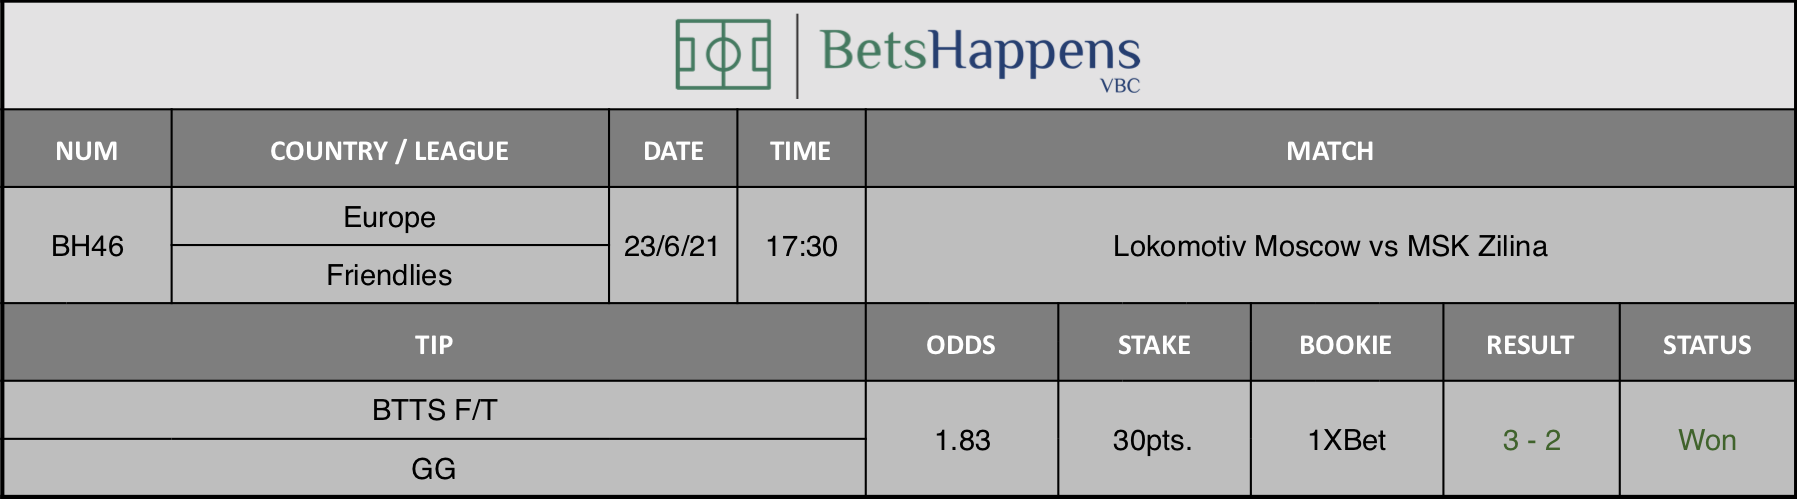 Results of our tip for the Lokomotiv Moscow vs MSK Zilina match BTTS F/T GG is recommended.